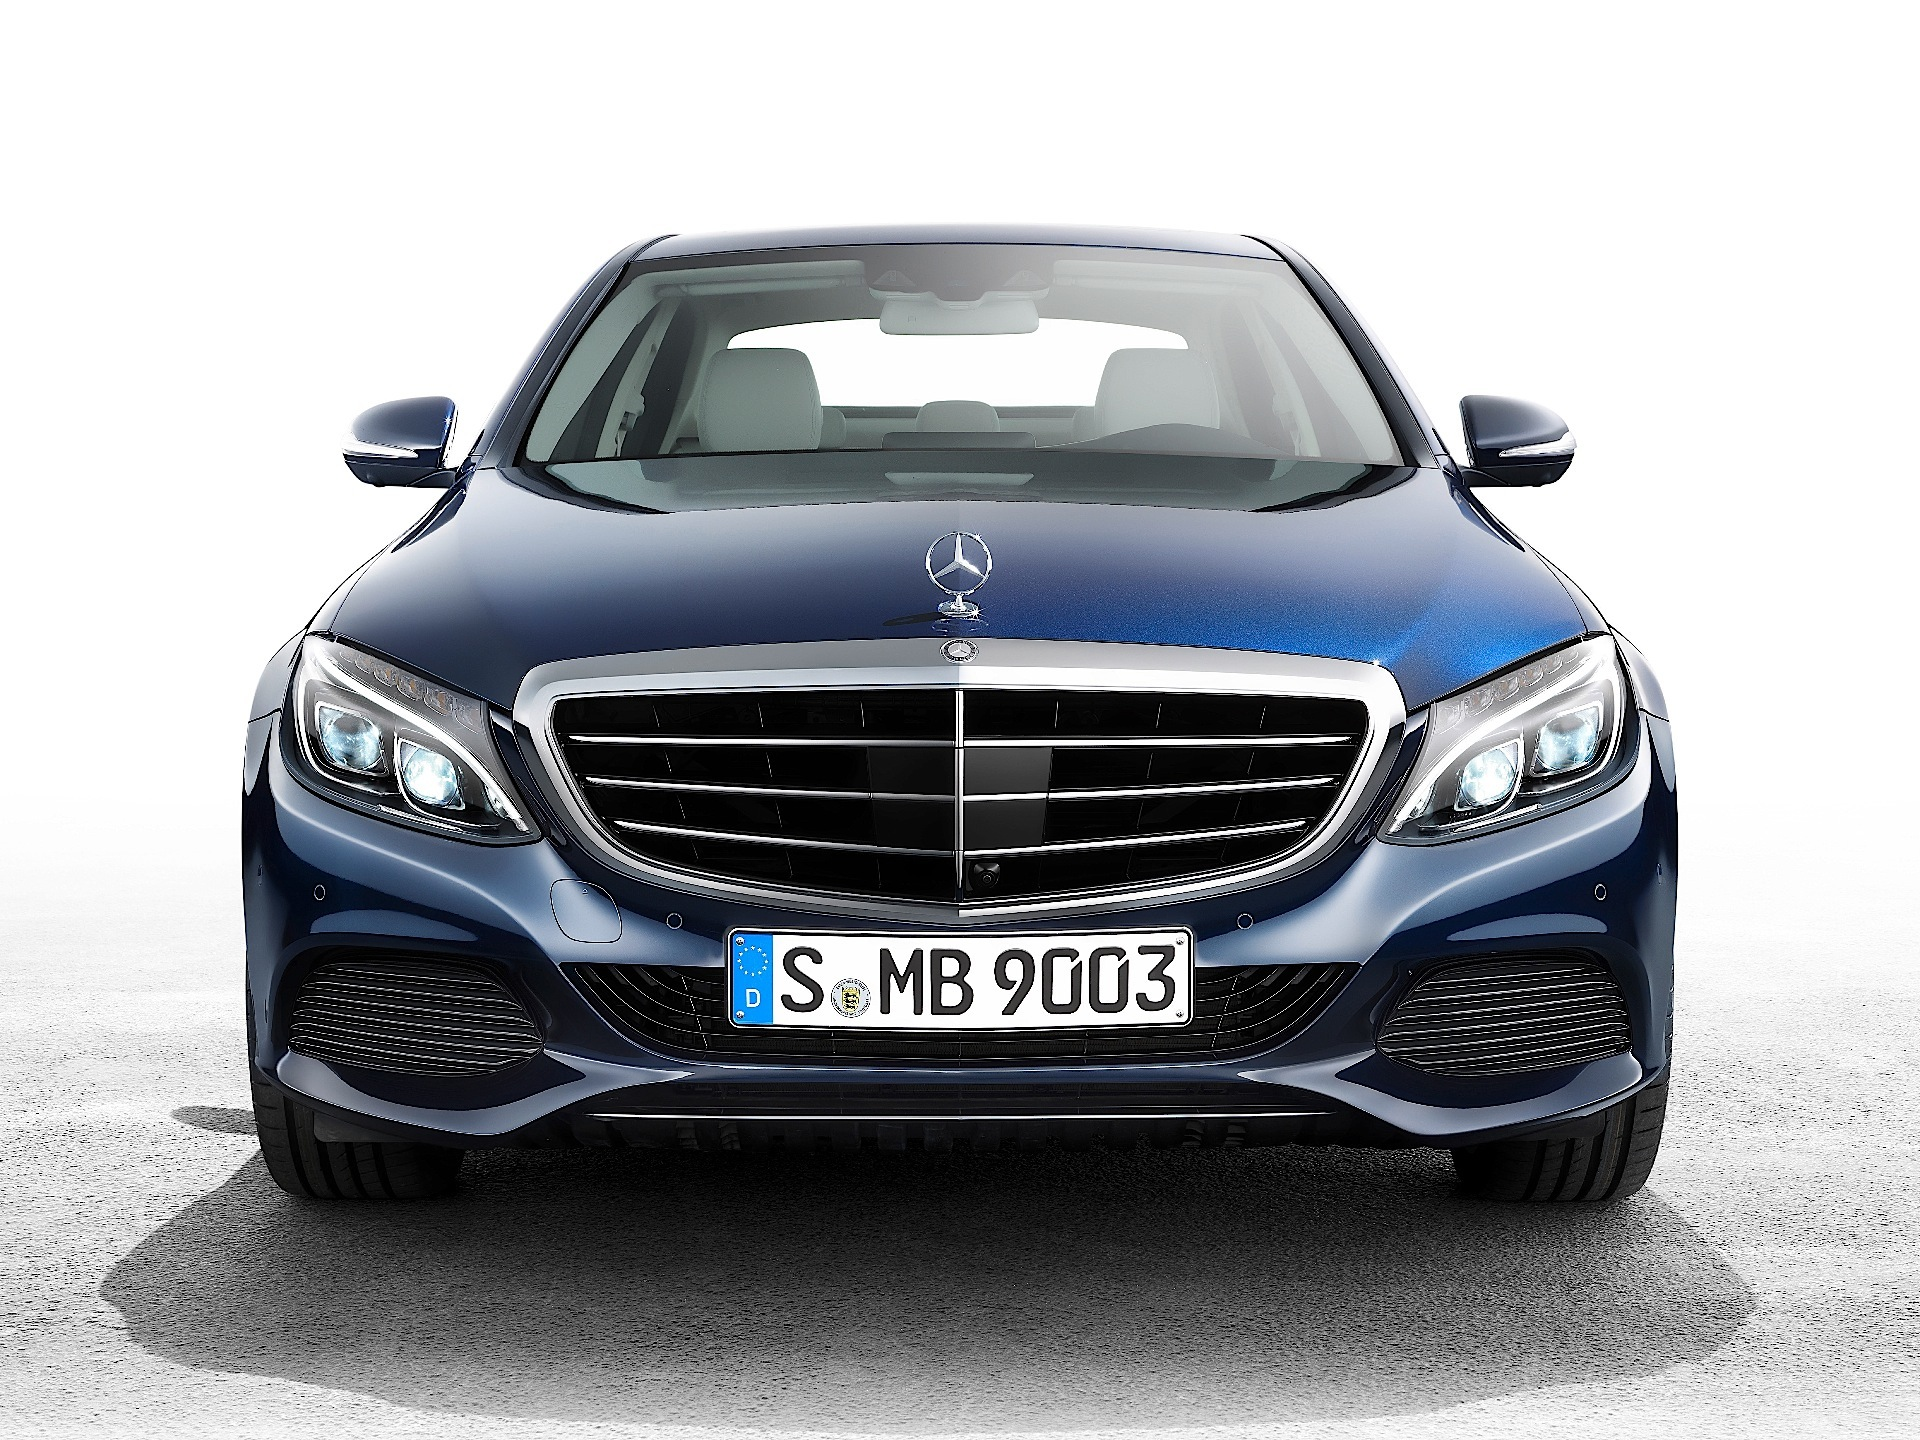 Best prices for Mercedes Benz C-Class